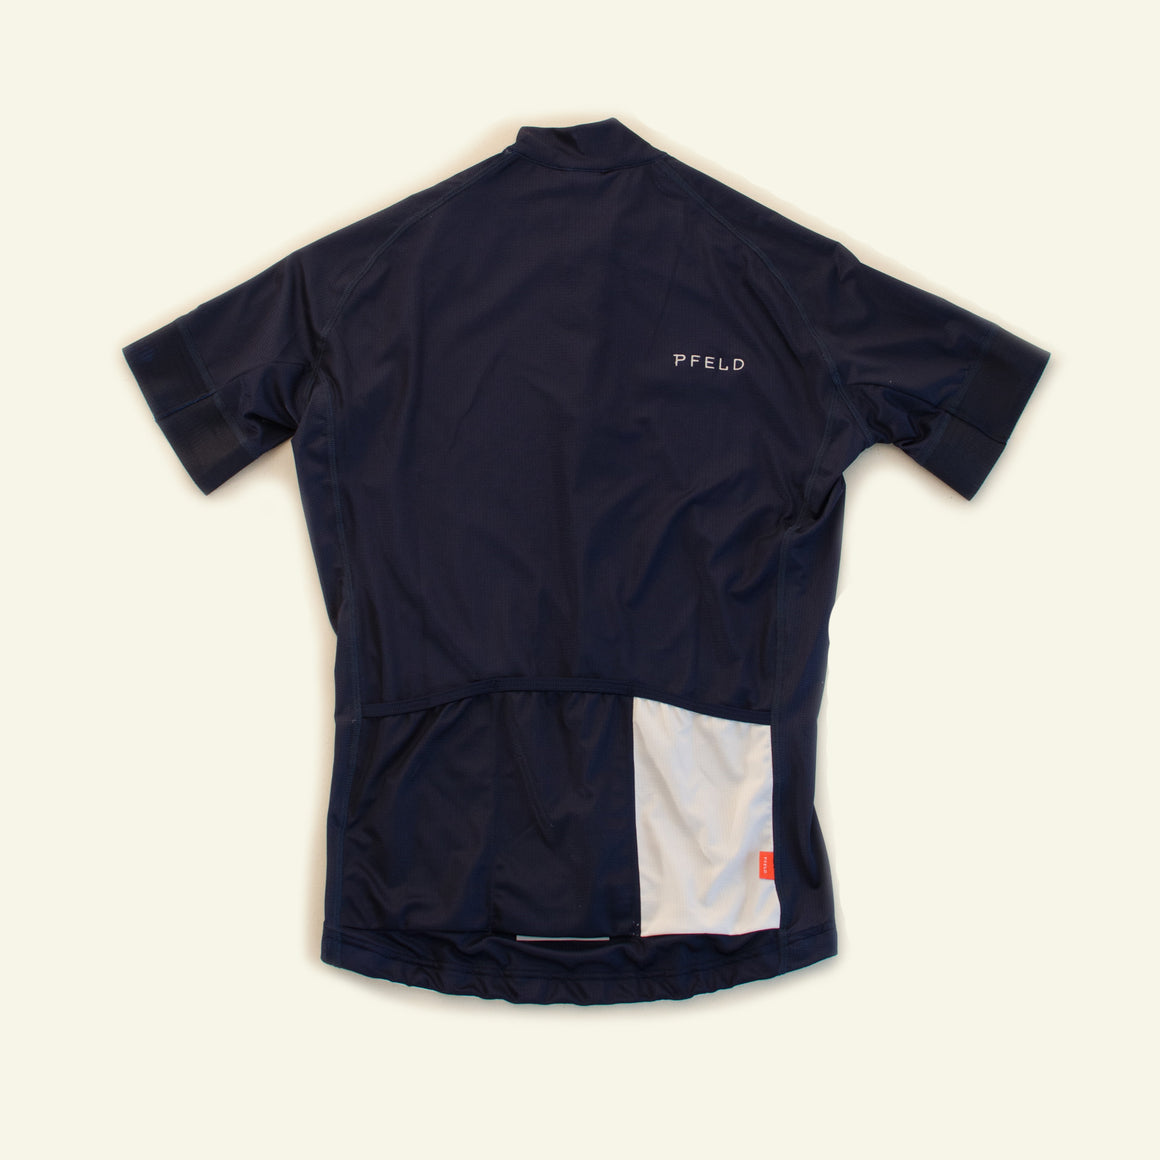 Women's Essential Jersey — Team Fit — Navy